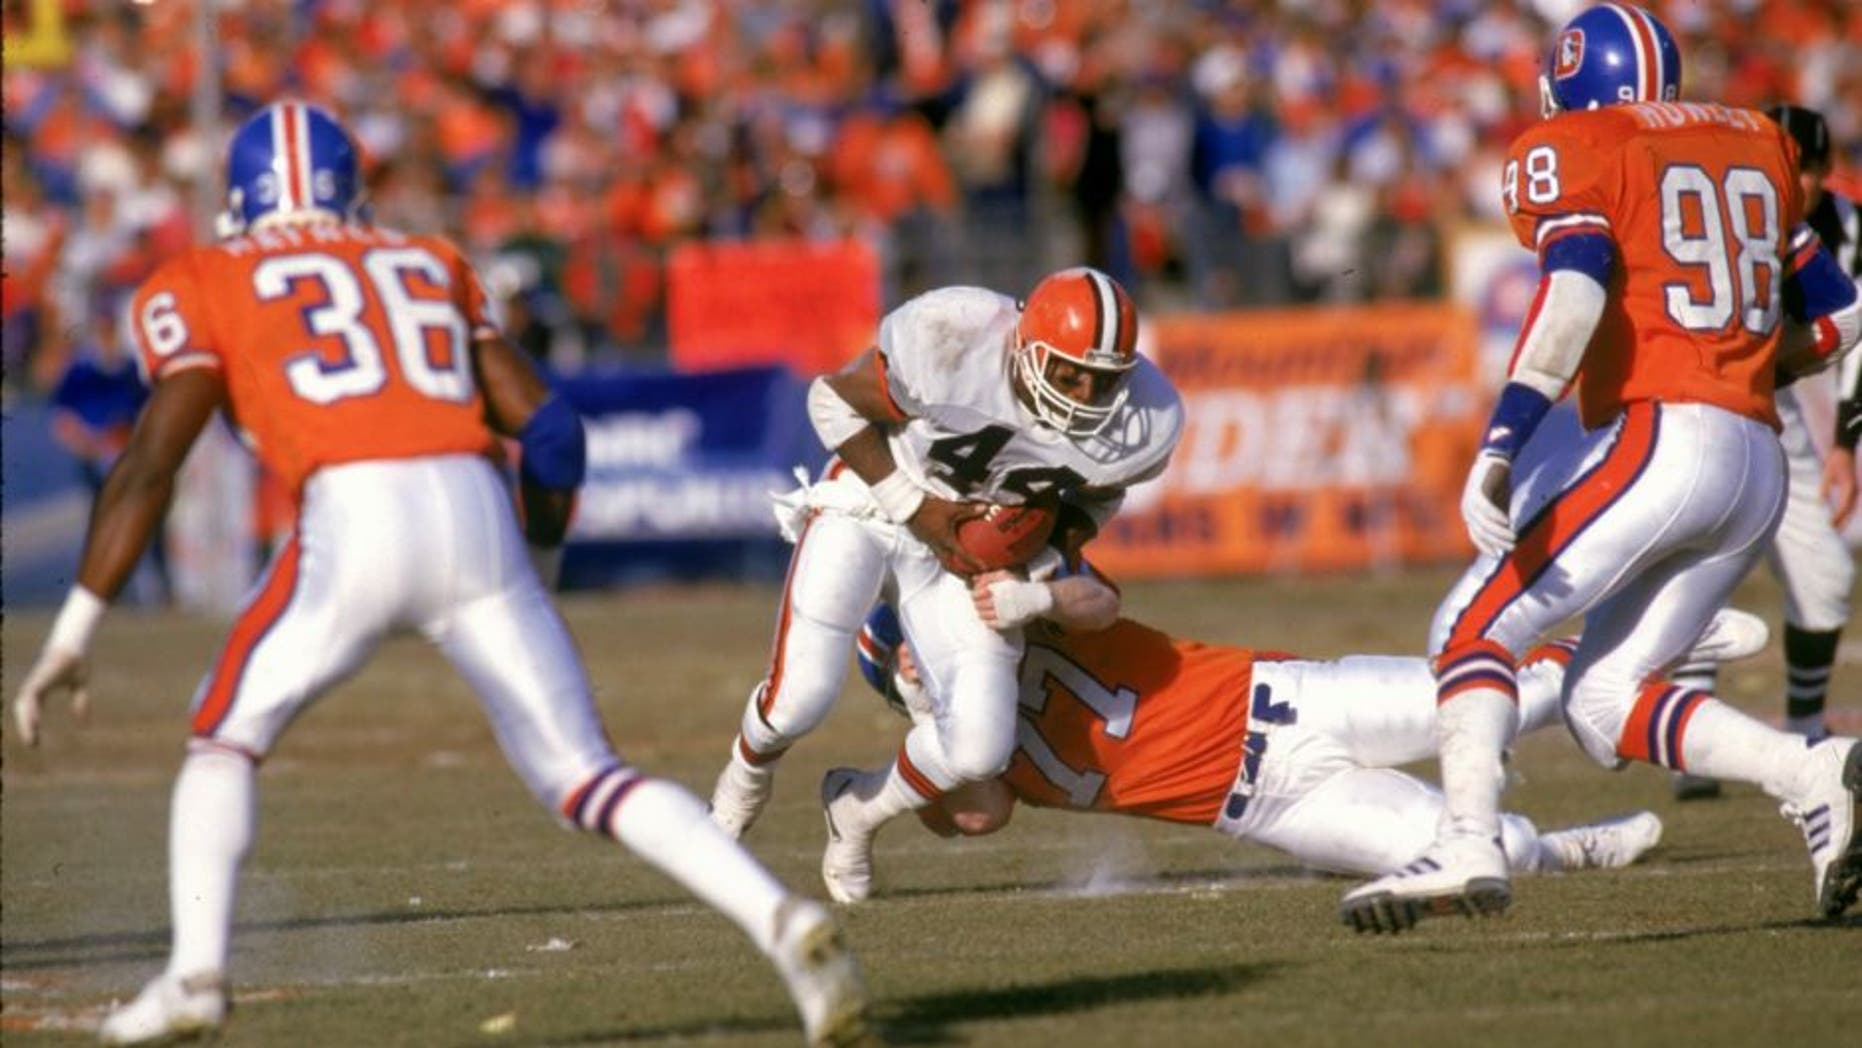 DENVER, CO - JANUARY 17: Running back Earnest Byner #44 of the Cleveland Browns runs upfield against the Denver Broncos in the 1987 AFC Championship Game at Mile High Stadium on January 17, 1988 in Denver, Colorado. The Broncos defeated the Browns 38-33. (Photo by E.L. Bakke/Getty Images)